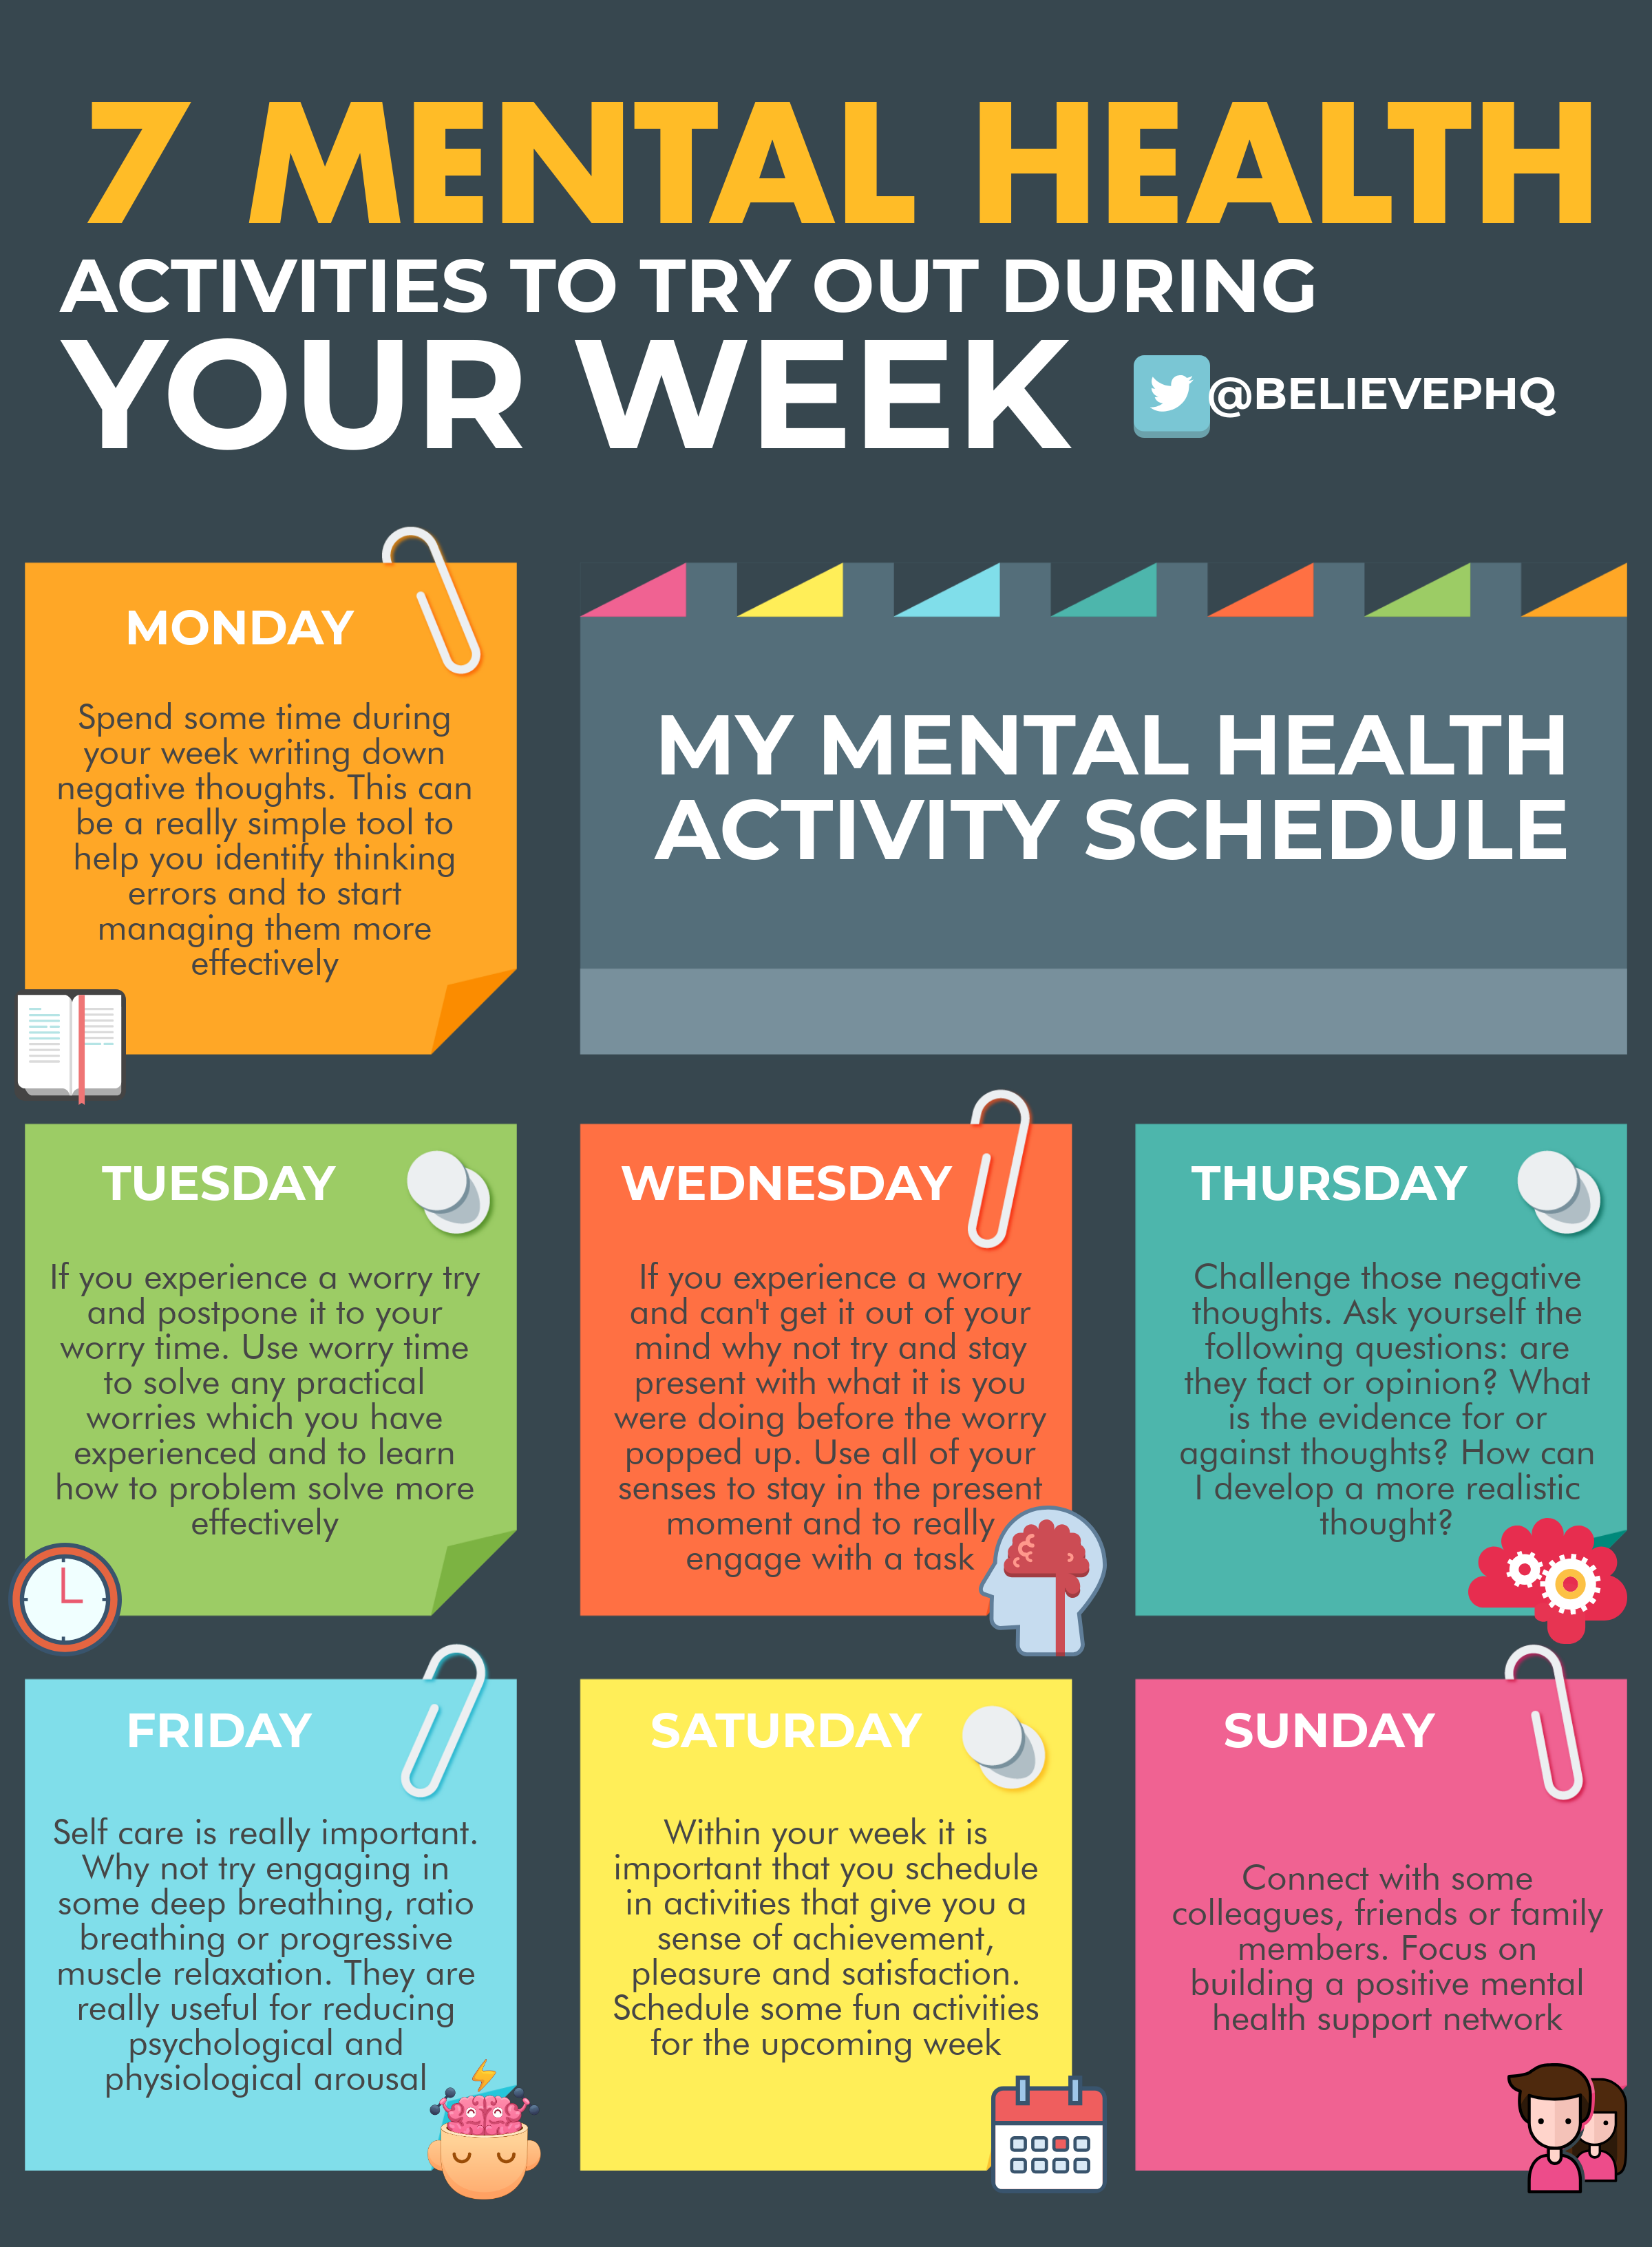 7-mental-health-activities-to-try-out-during-the-week